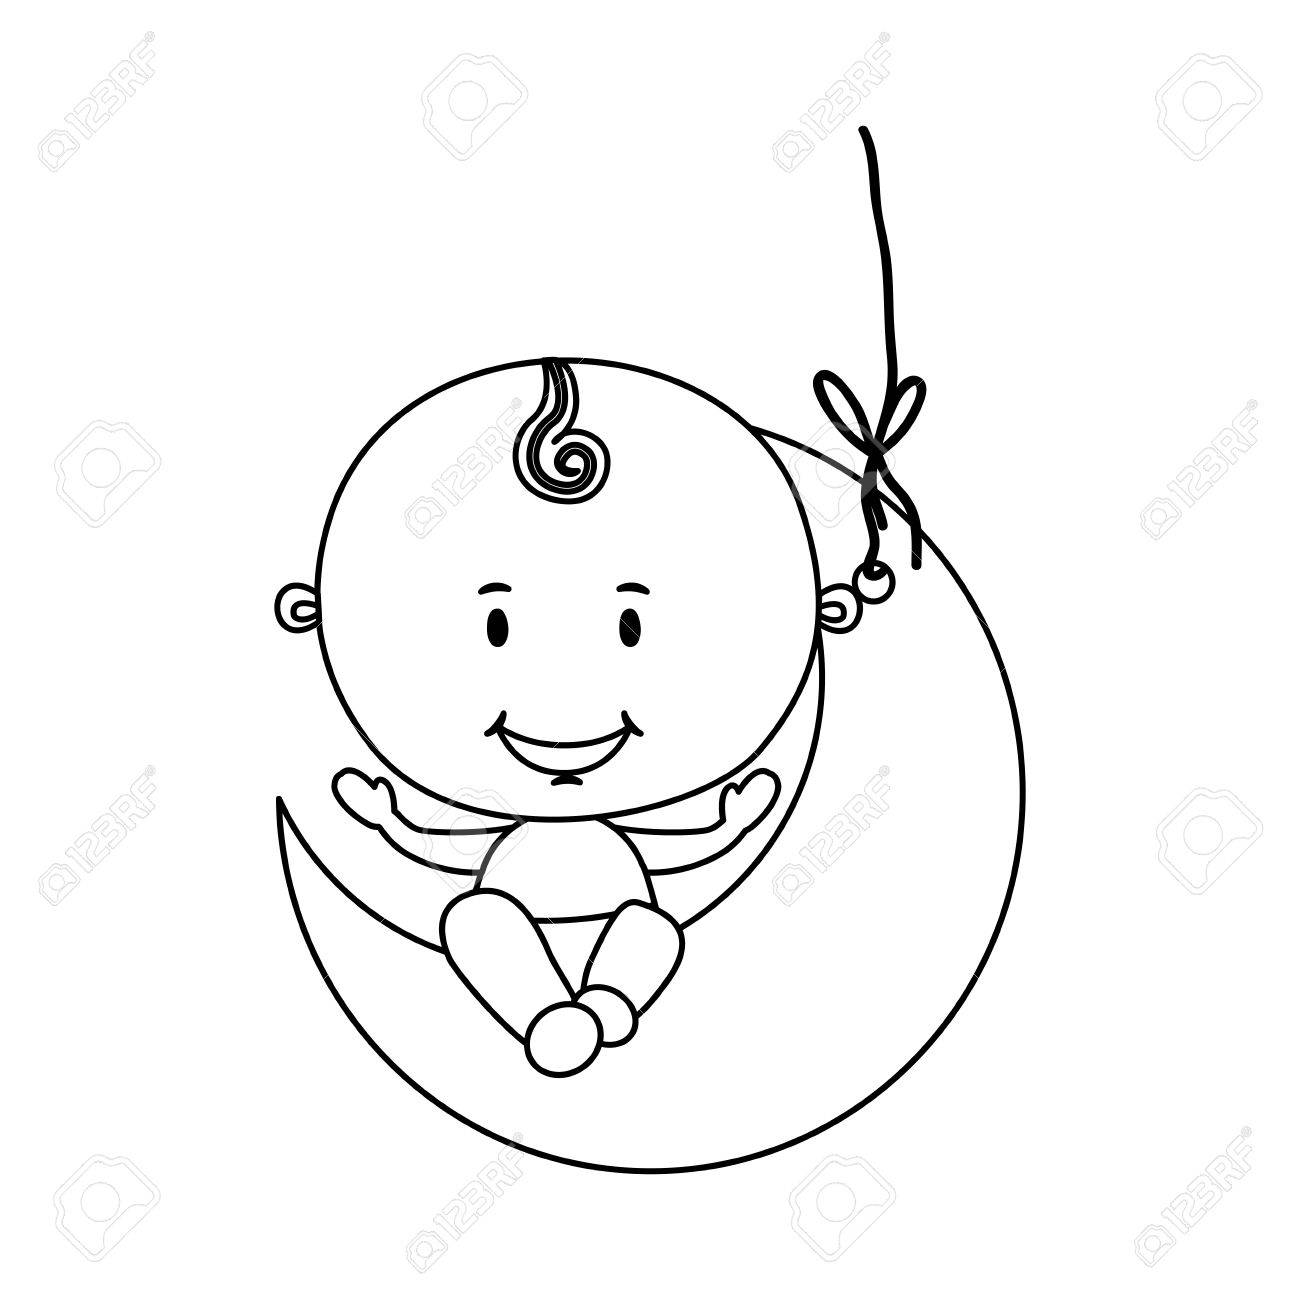 hight resolution of cute baby boy icon image vector illustration design stock vector 66476630